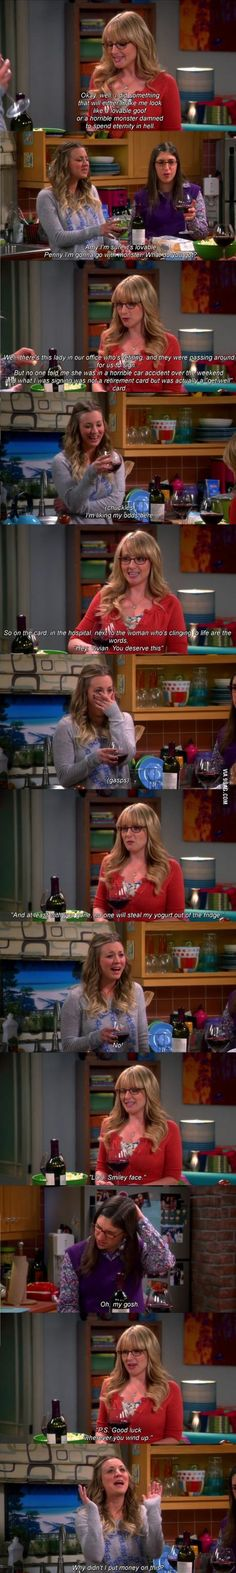 TBBT - Can´t stop laughing! This is still so funny! The Big Theory, Big Bang Theory, Can't Stop Laughing, Laughing So Hard, Just For Fun, Just In Case, Tbbt, Funny Cute, Hilarious